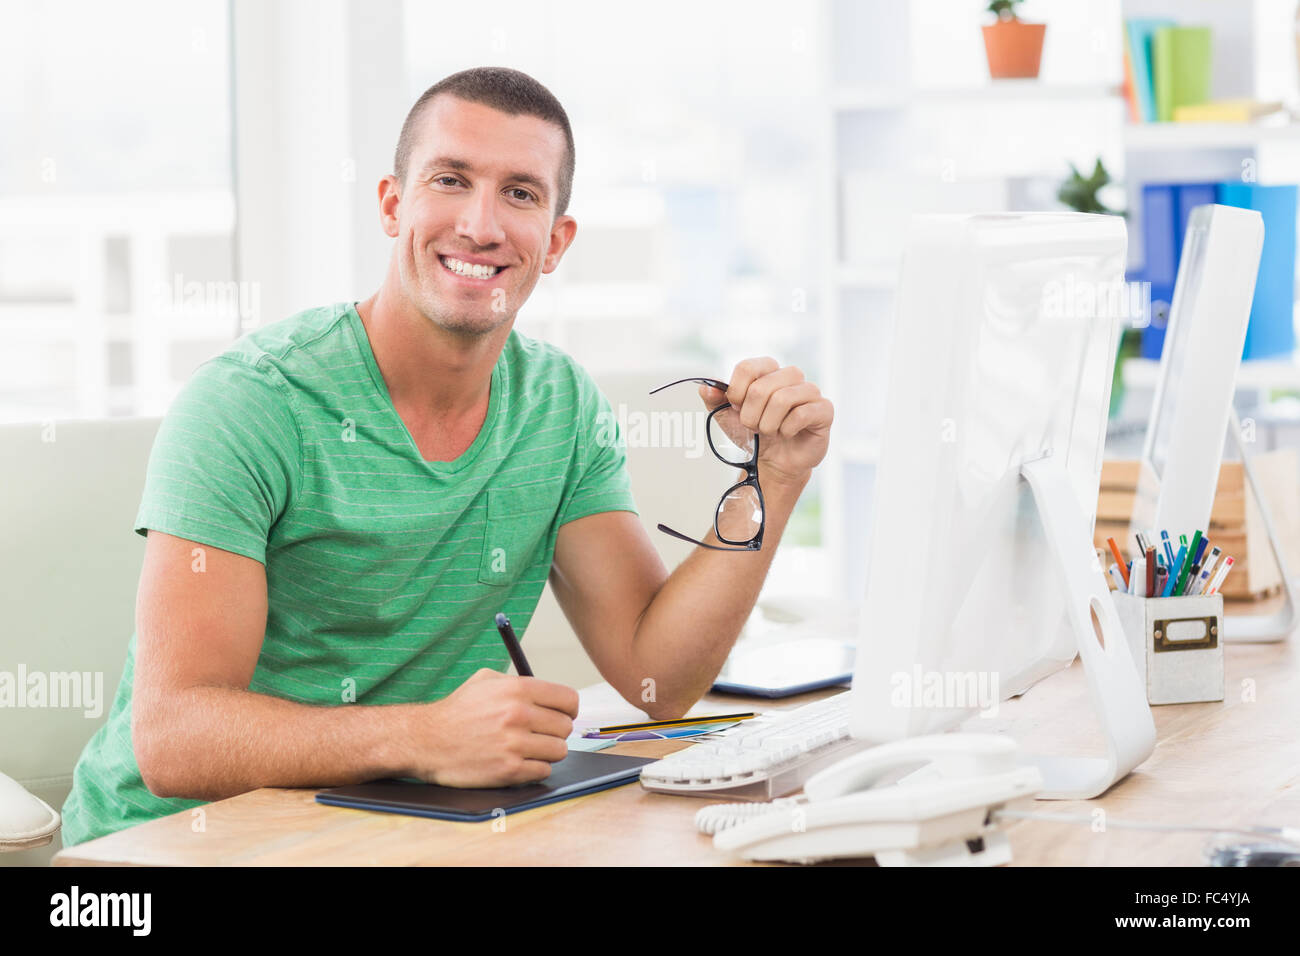 Young creative businessman drawing on graphic tablet - Stock Image